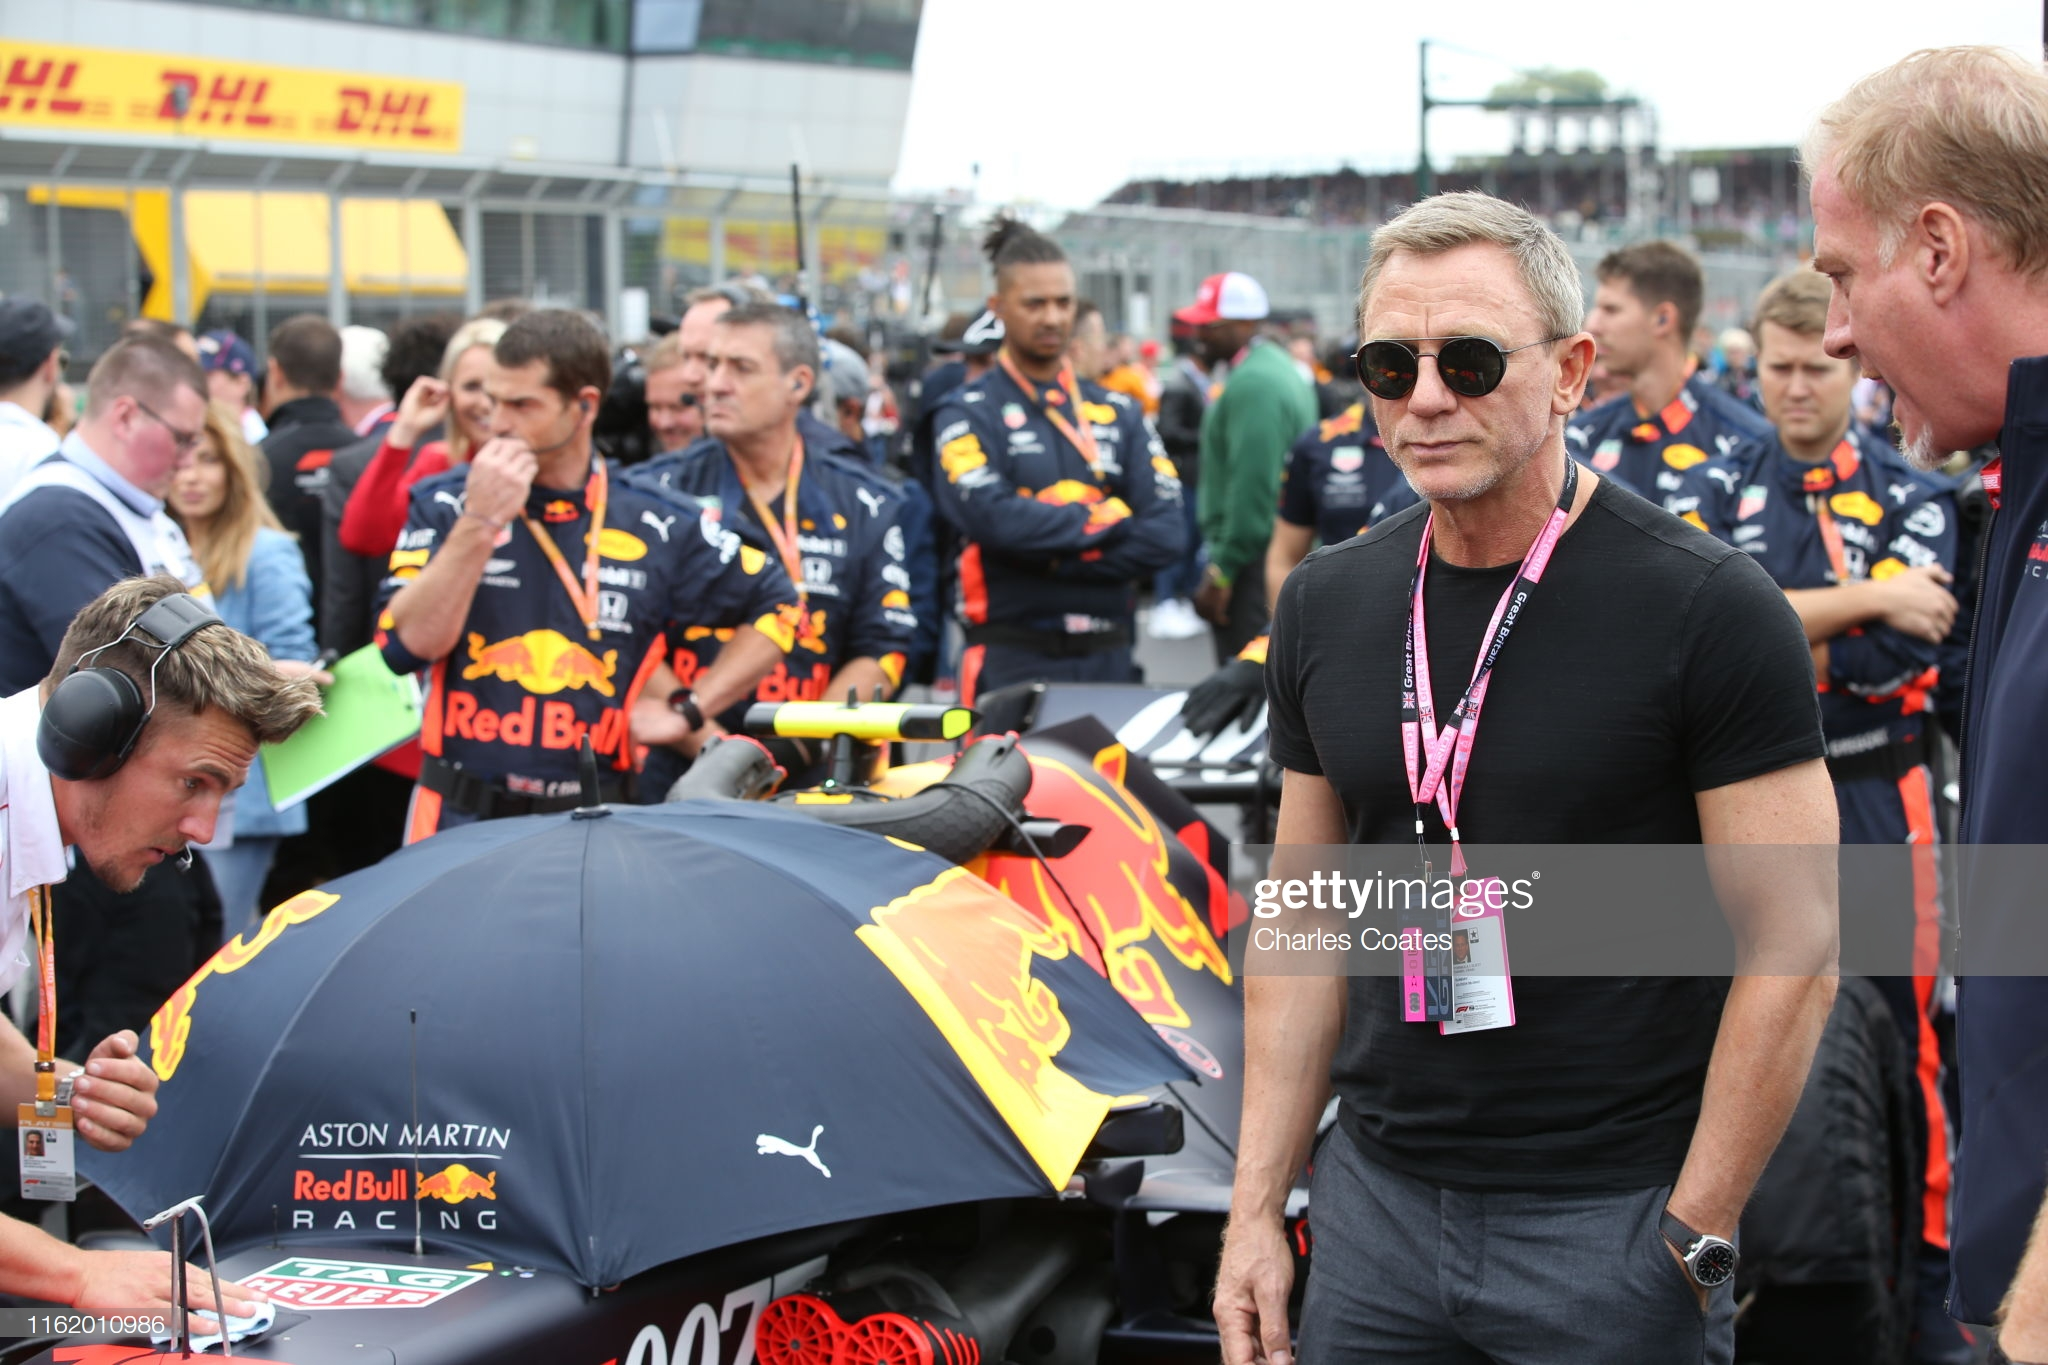 Daniel Craig at 2019 British GP With Omega Seamaster Bullhead